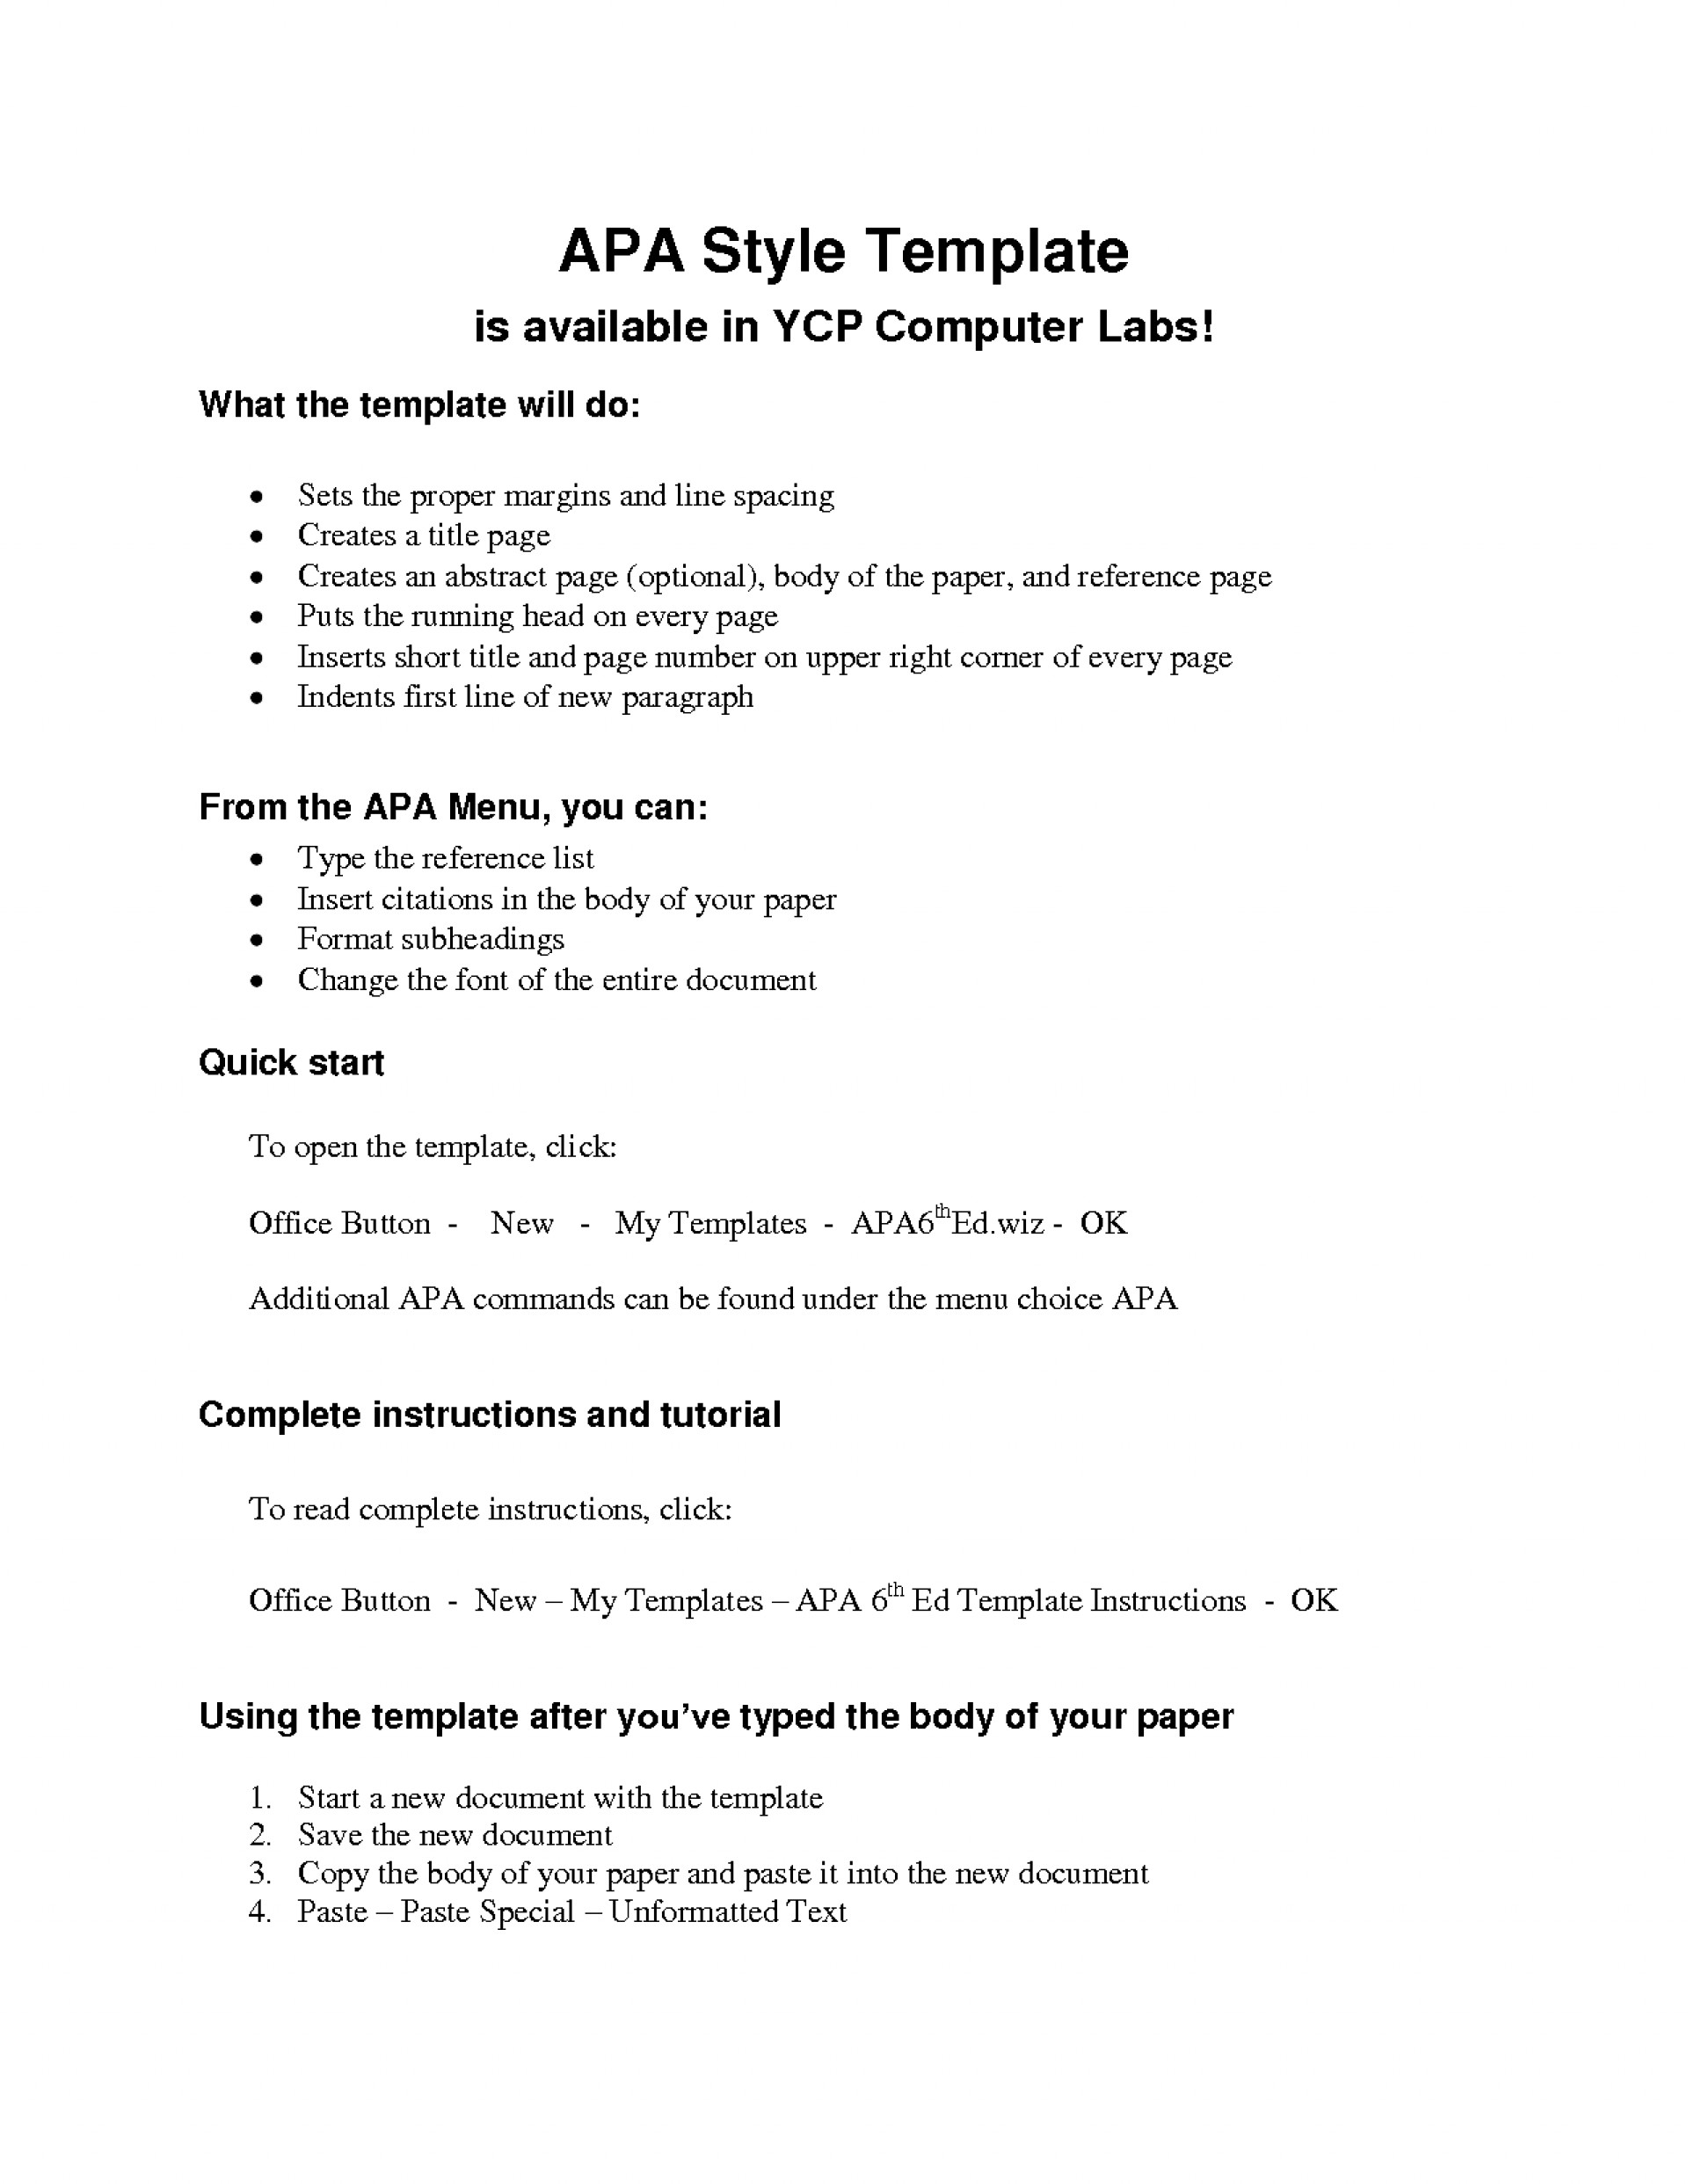 003 Research Paper Apa Outline Template Sample Kzwufzci How To Write In Sensational A Format 1920